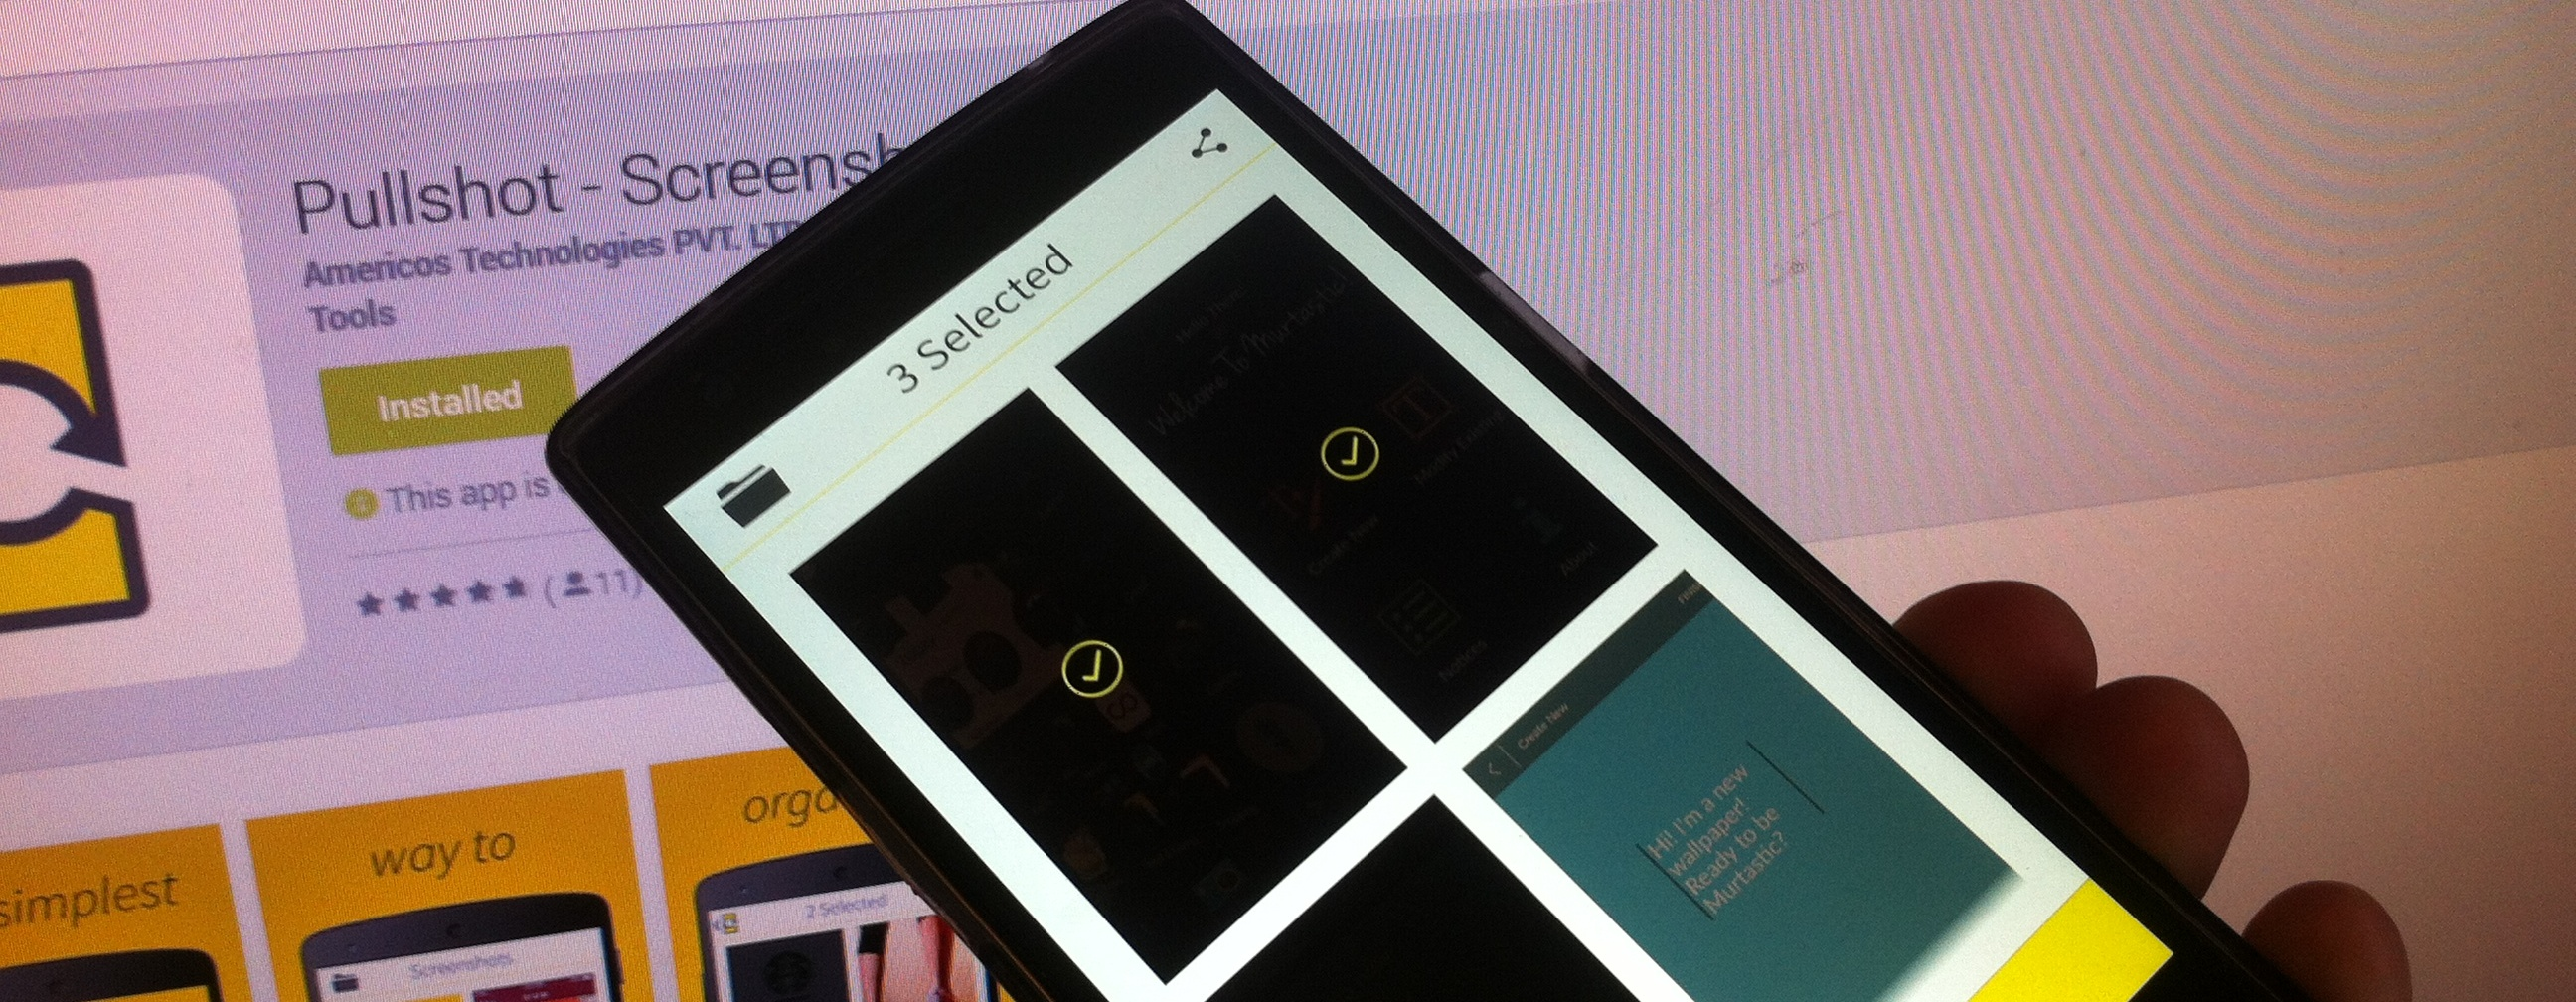 Pullshot: A Simple Screenshot Organizer for Android